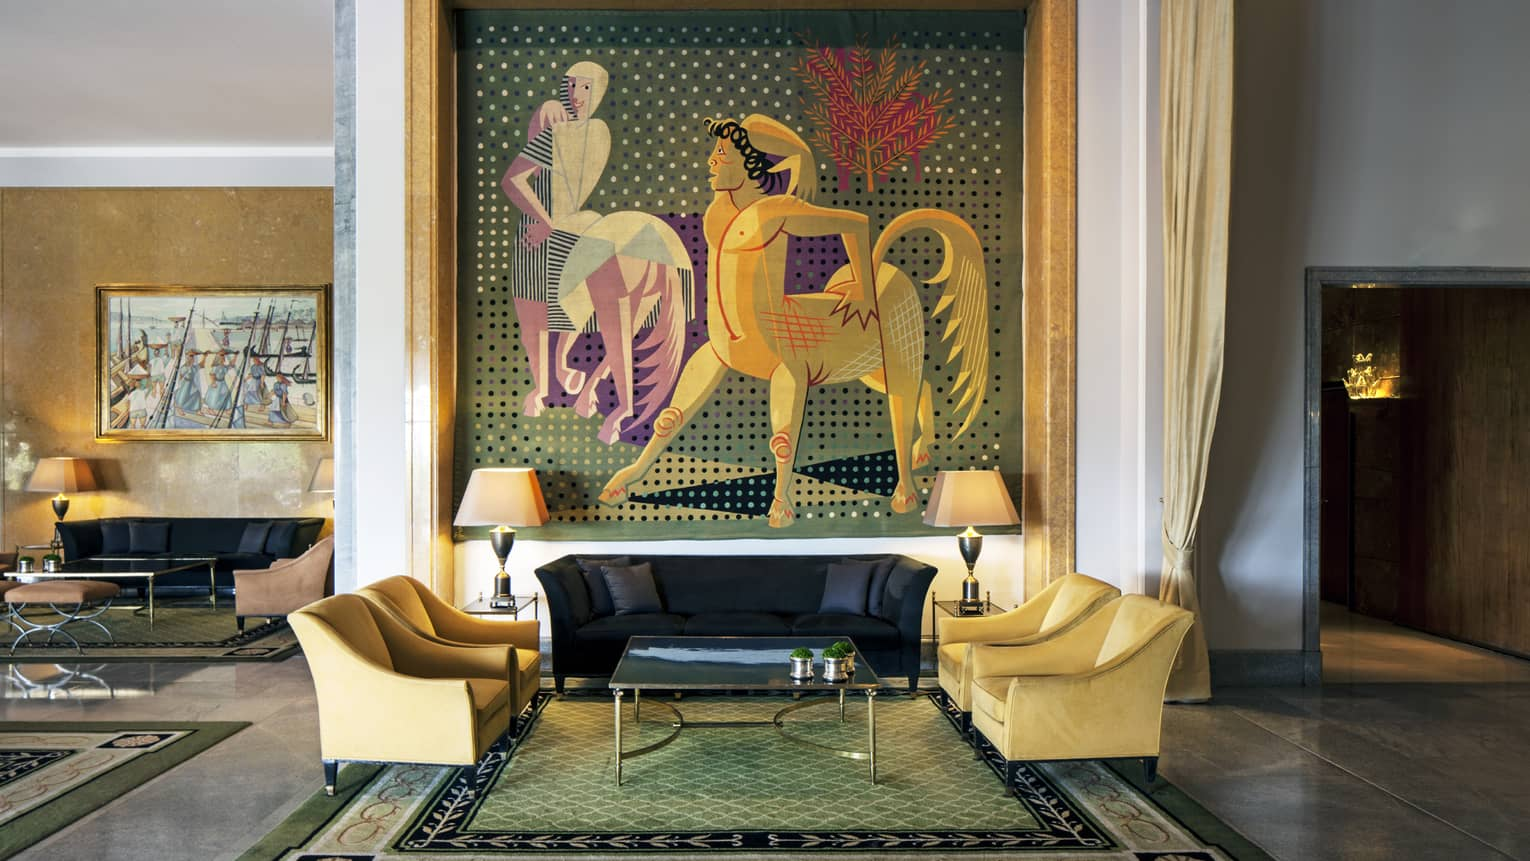 Almada Negreiros Lounge yellow armchairs below large handmade tapestry depicting centaurs